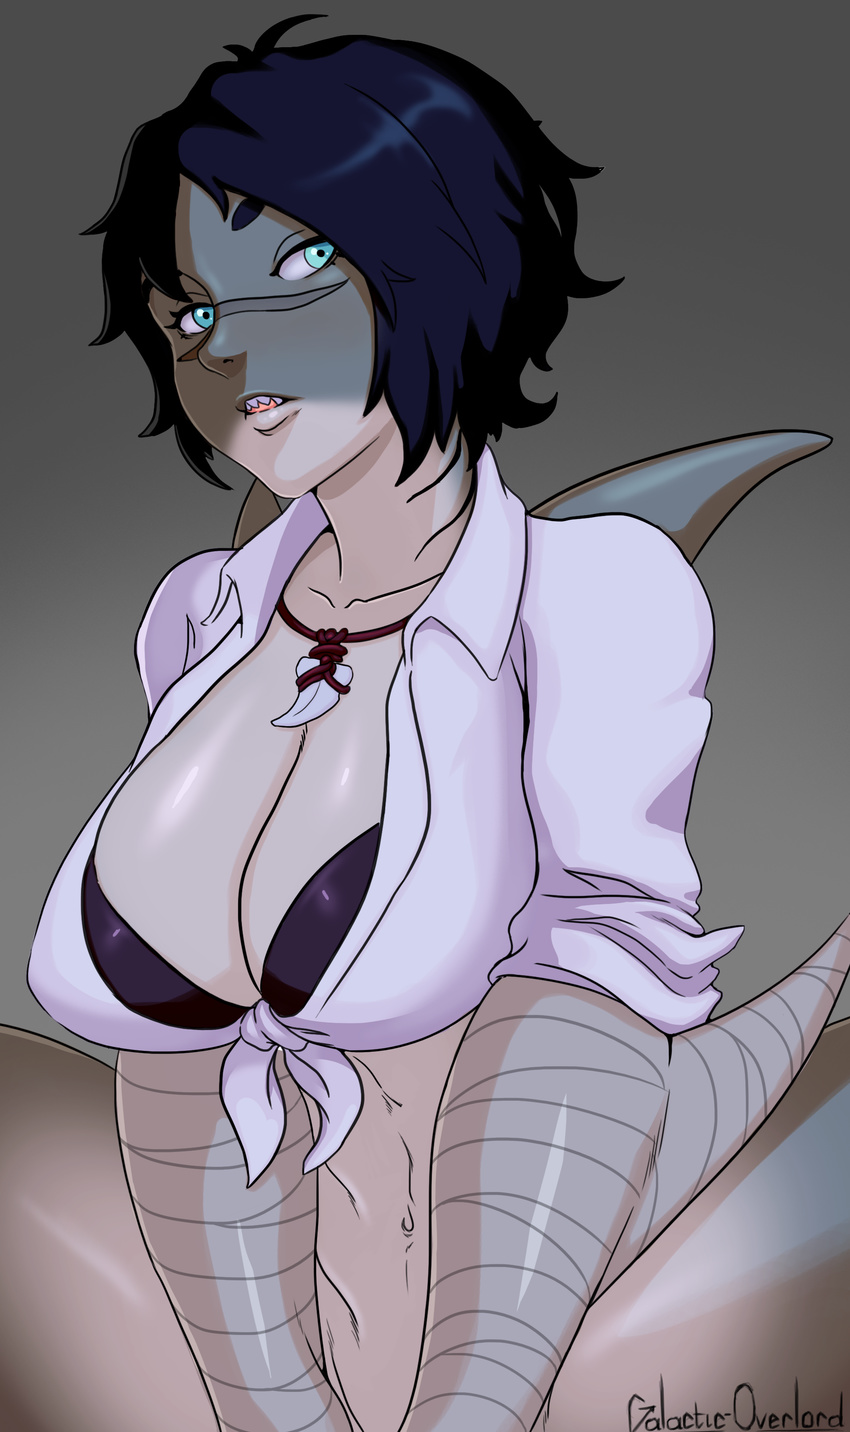 big_breasts bikini bikini_top black_hair blue_eyes bottomless breasts clothed clothing female fish front-tie_top galactic_overlord gills grey_skin hair hand_wraps humanoid jewelry looking_at_viewer marine necklace out-of-frame_censoring scar shark sharp_teeth short_hair sitting solo swimsuit teeth wraps zhaleh